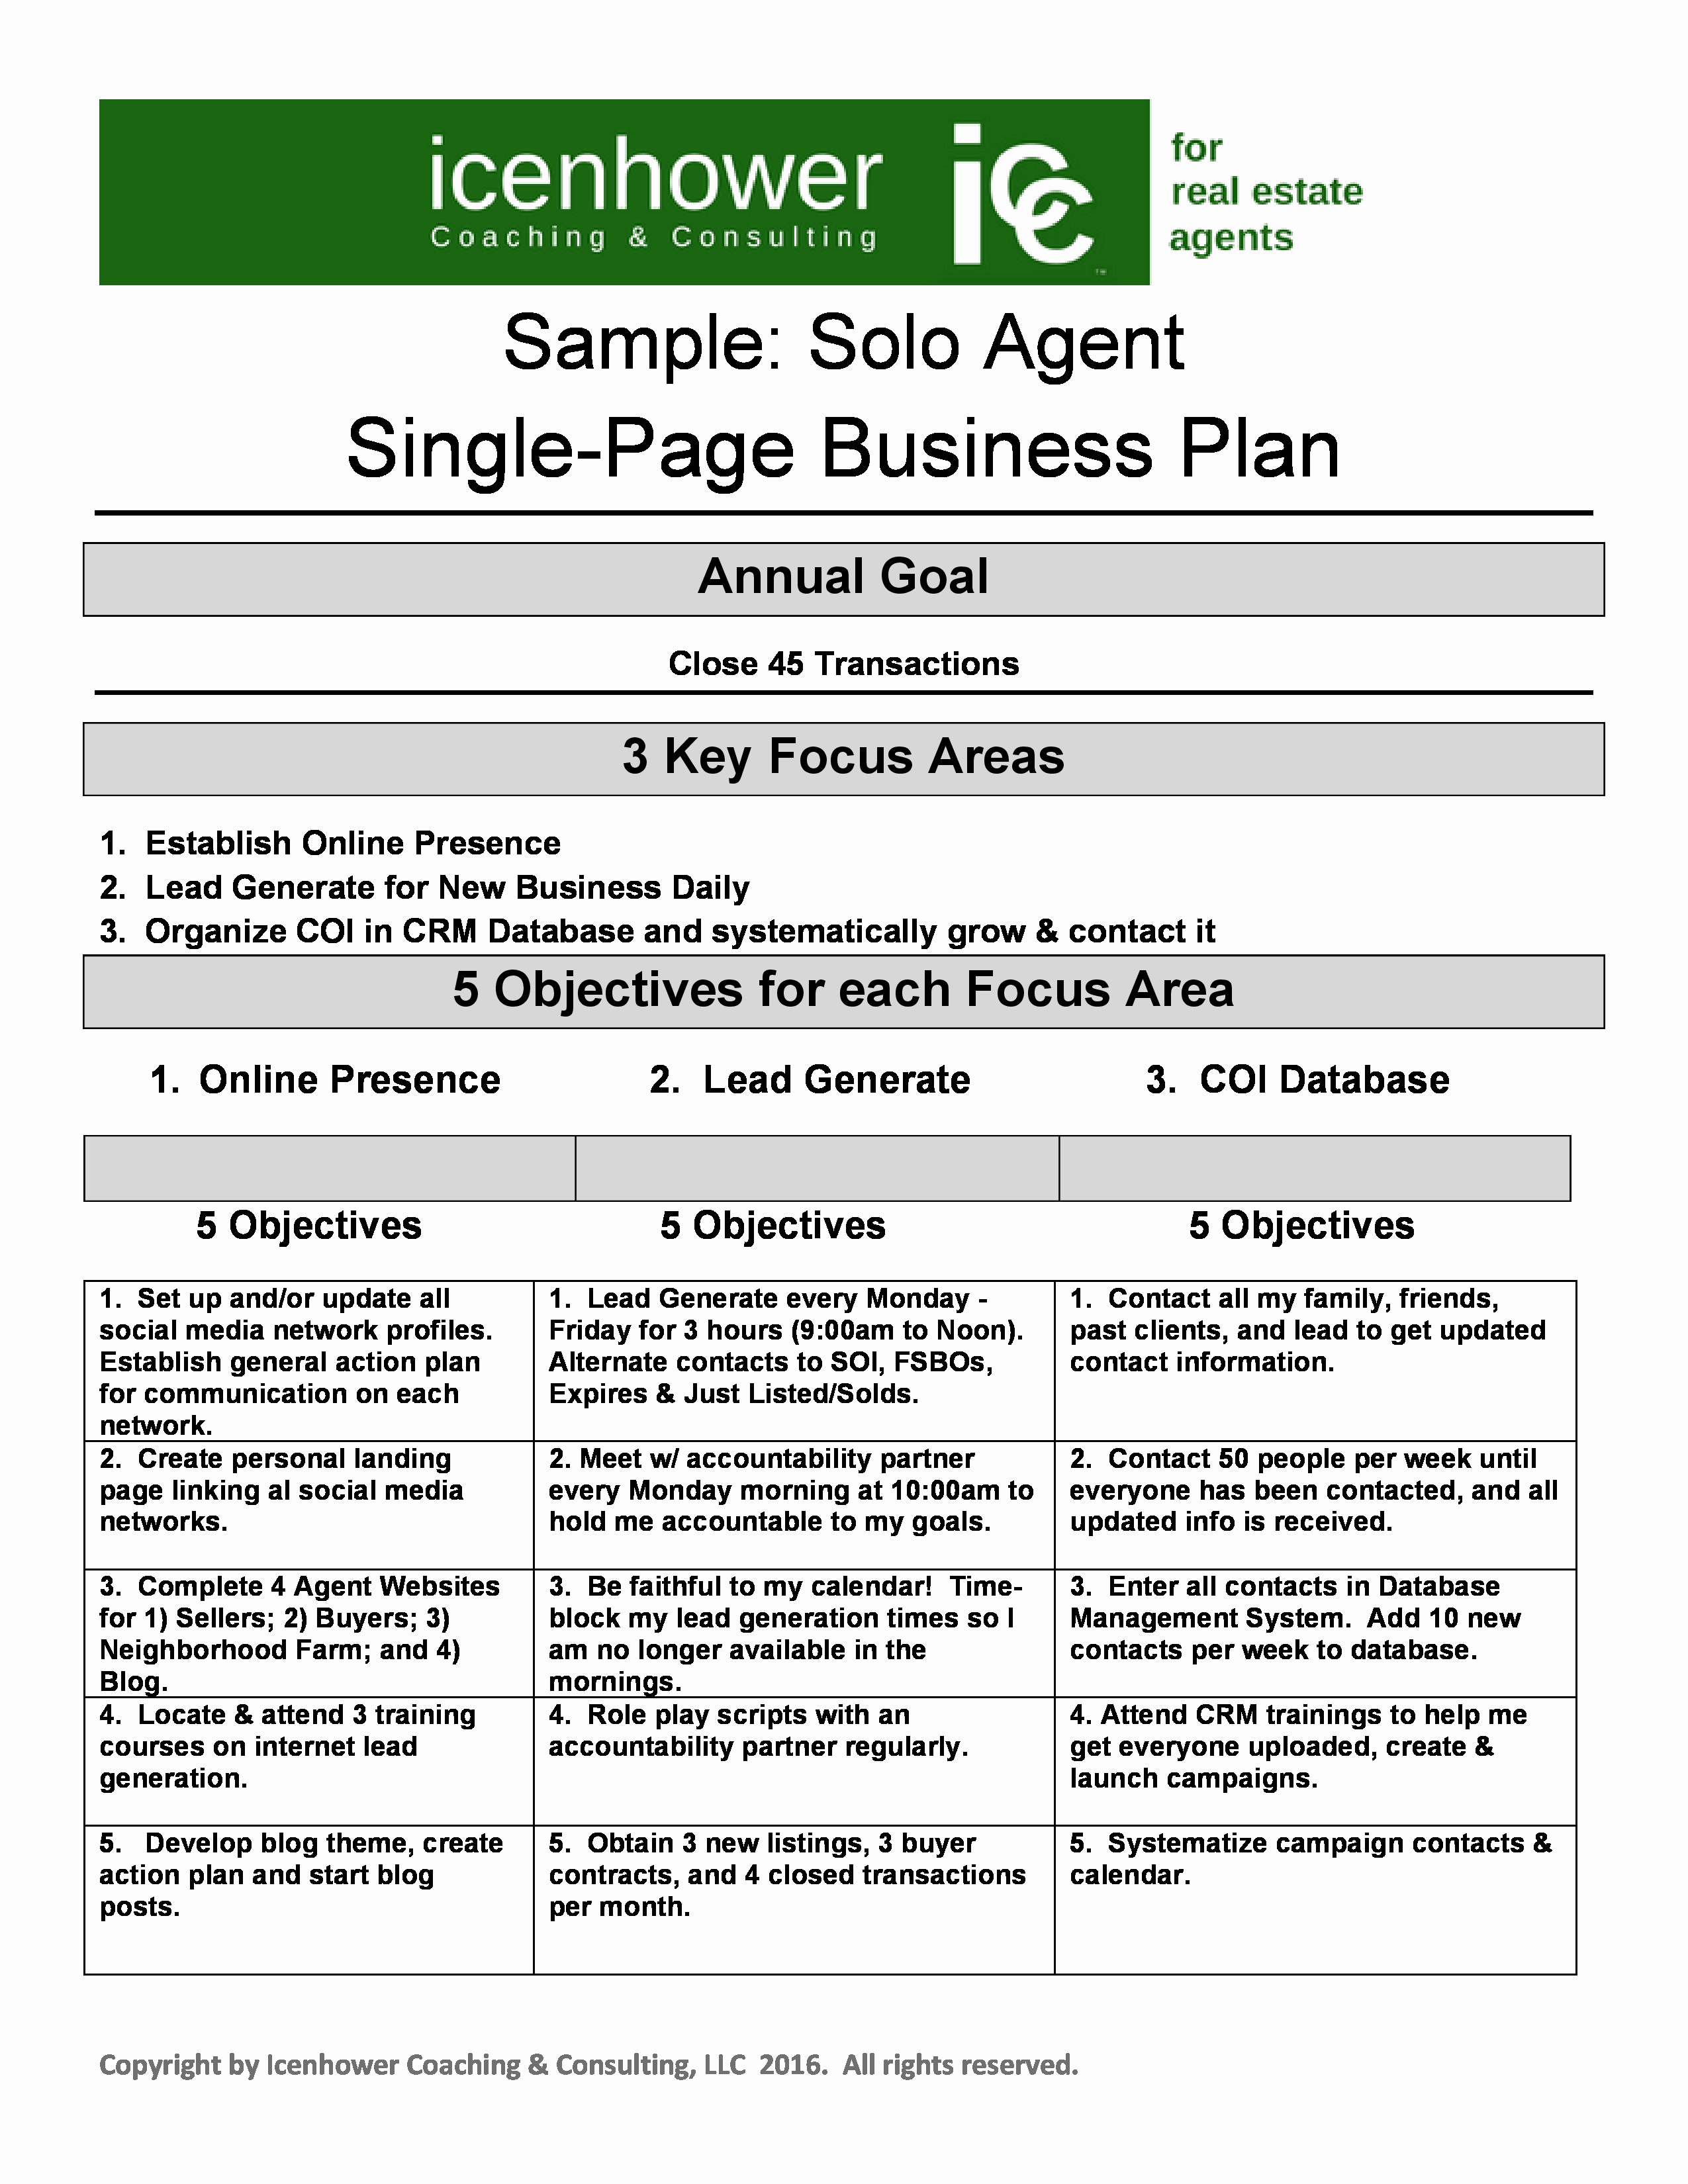 Free House Flipping Spreadsheet Template Throughout Free House Flipping Spreadsheet Template Inspirational Real Estate